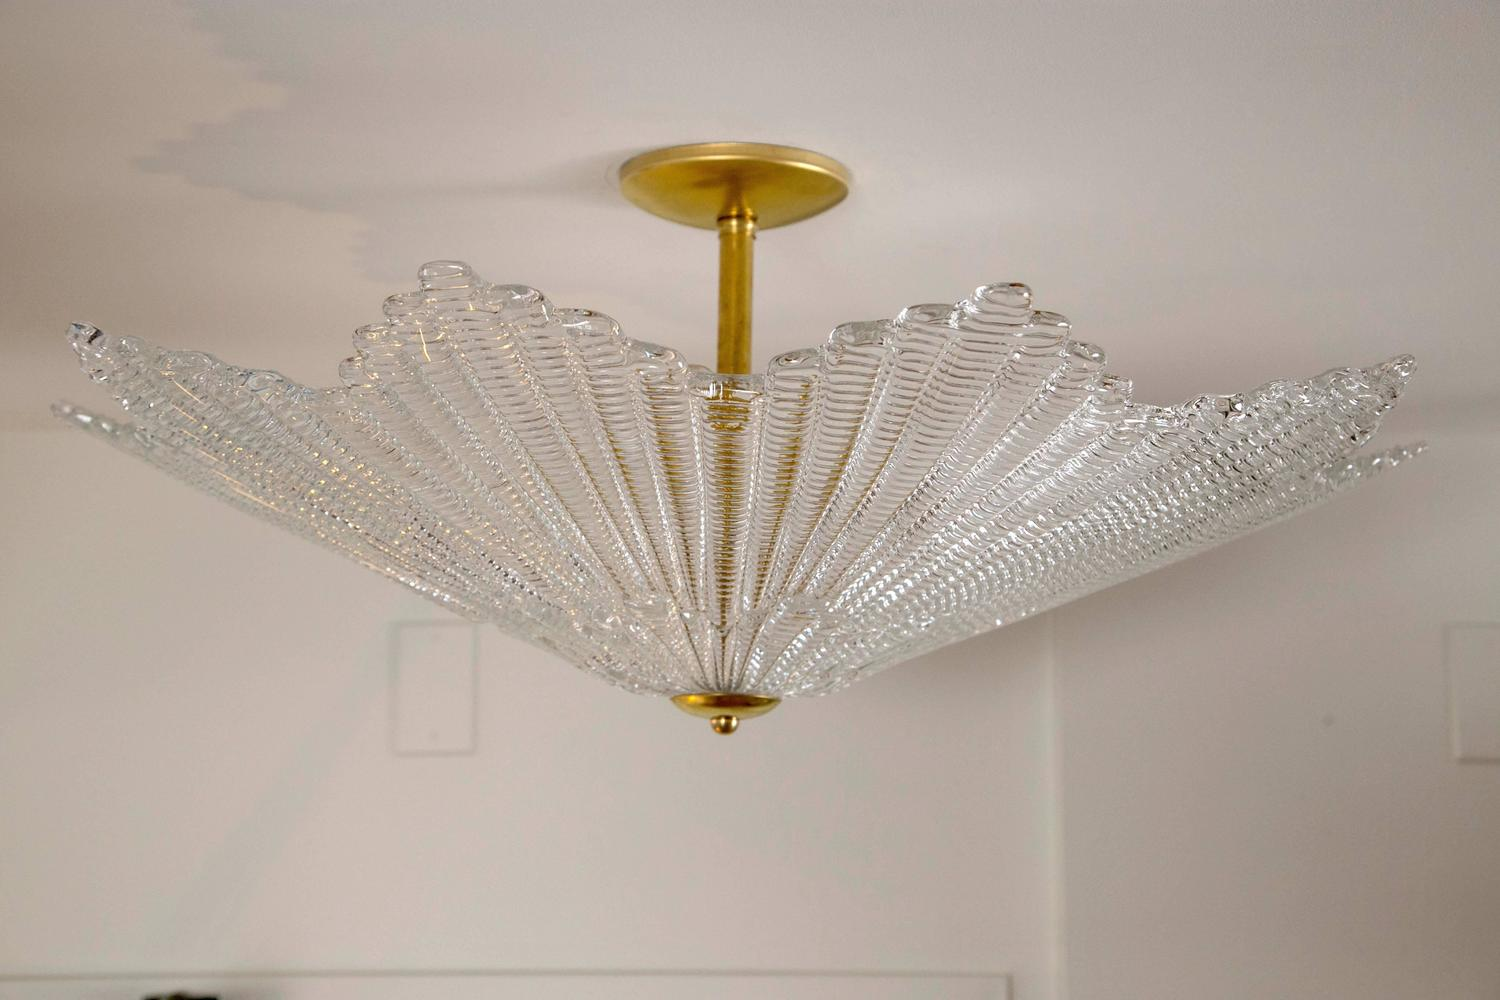 Large Murano Star Shaped Ceiling Fixture For Sale At 1stdibs